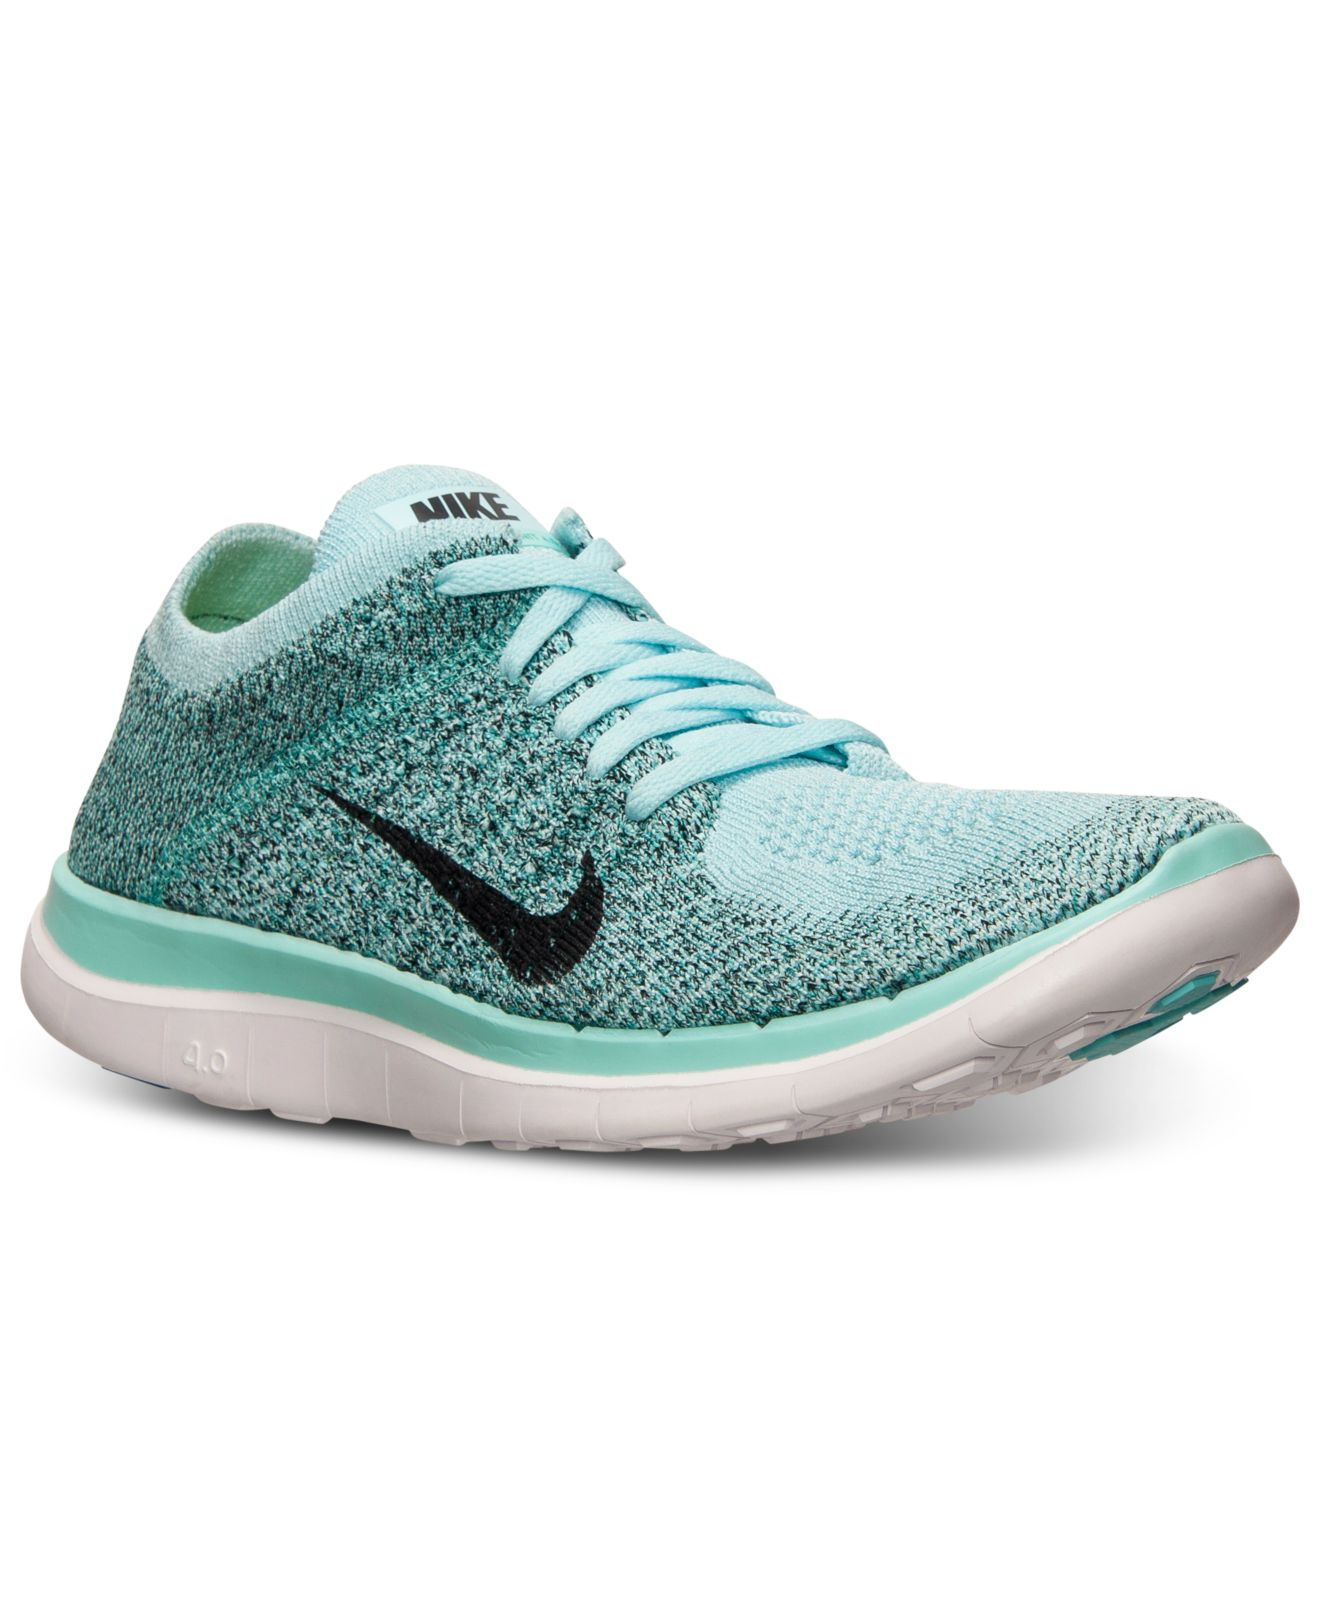 cheap for discount 60054 5cbb2 Lyst - Nike Women s Free Flyknit 4.0 Running Sneakers From Finish Line in  Blue